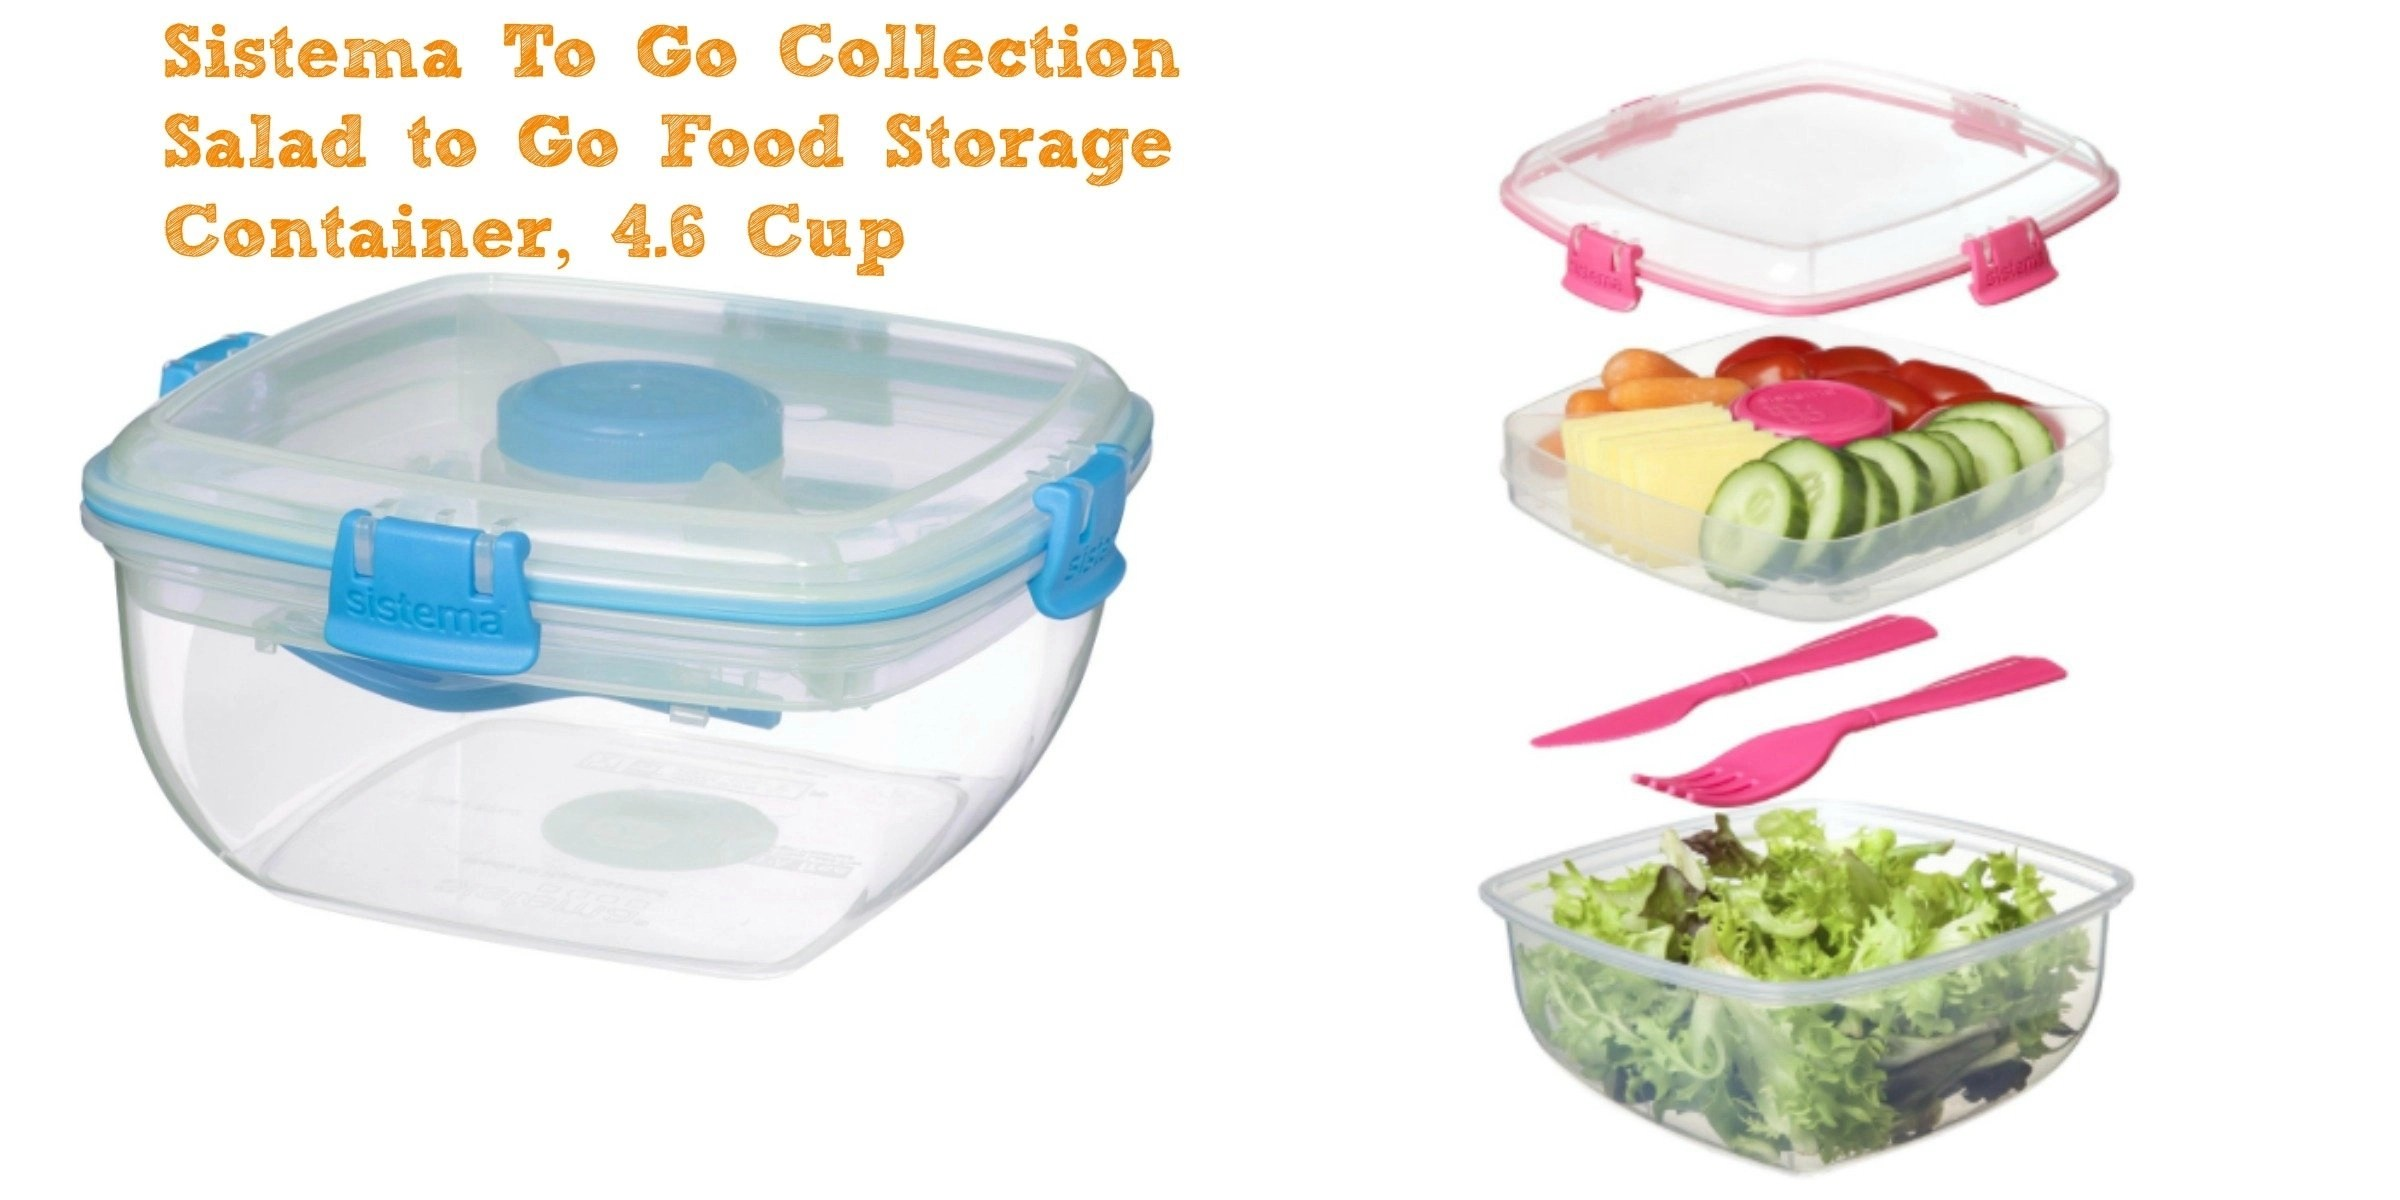 The best containers for school lunch snacks gathered for Cuisine to go